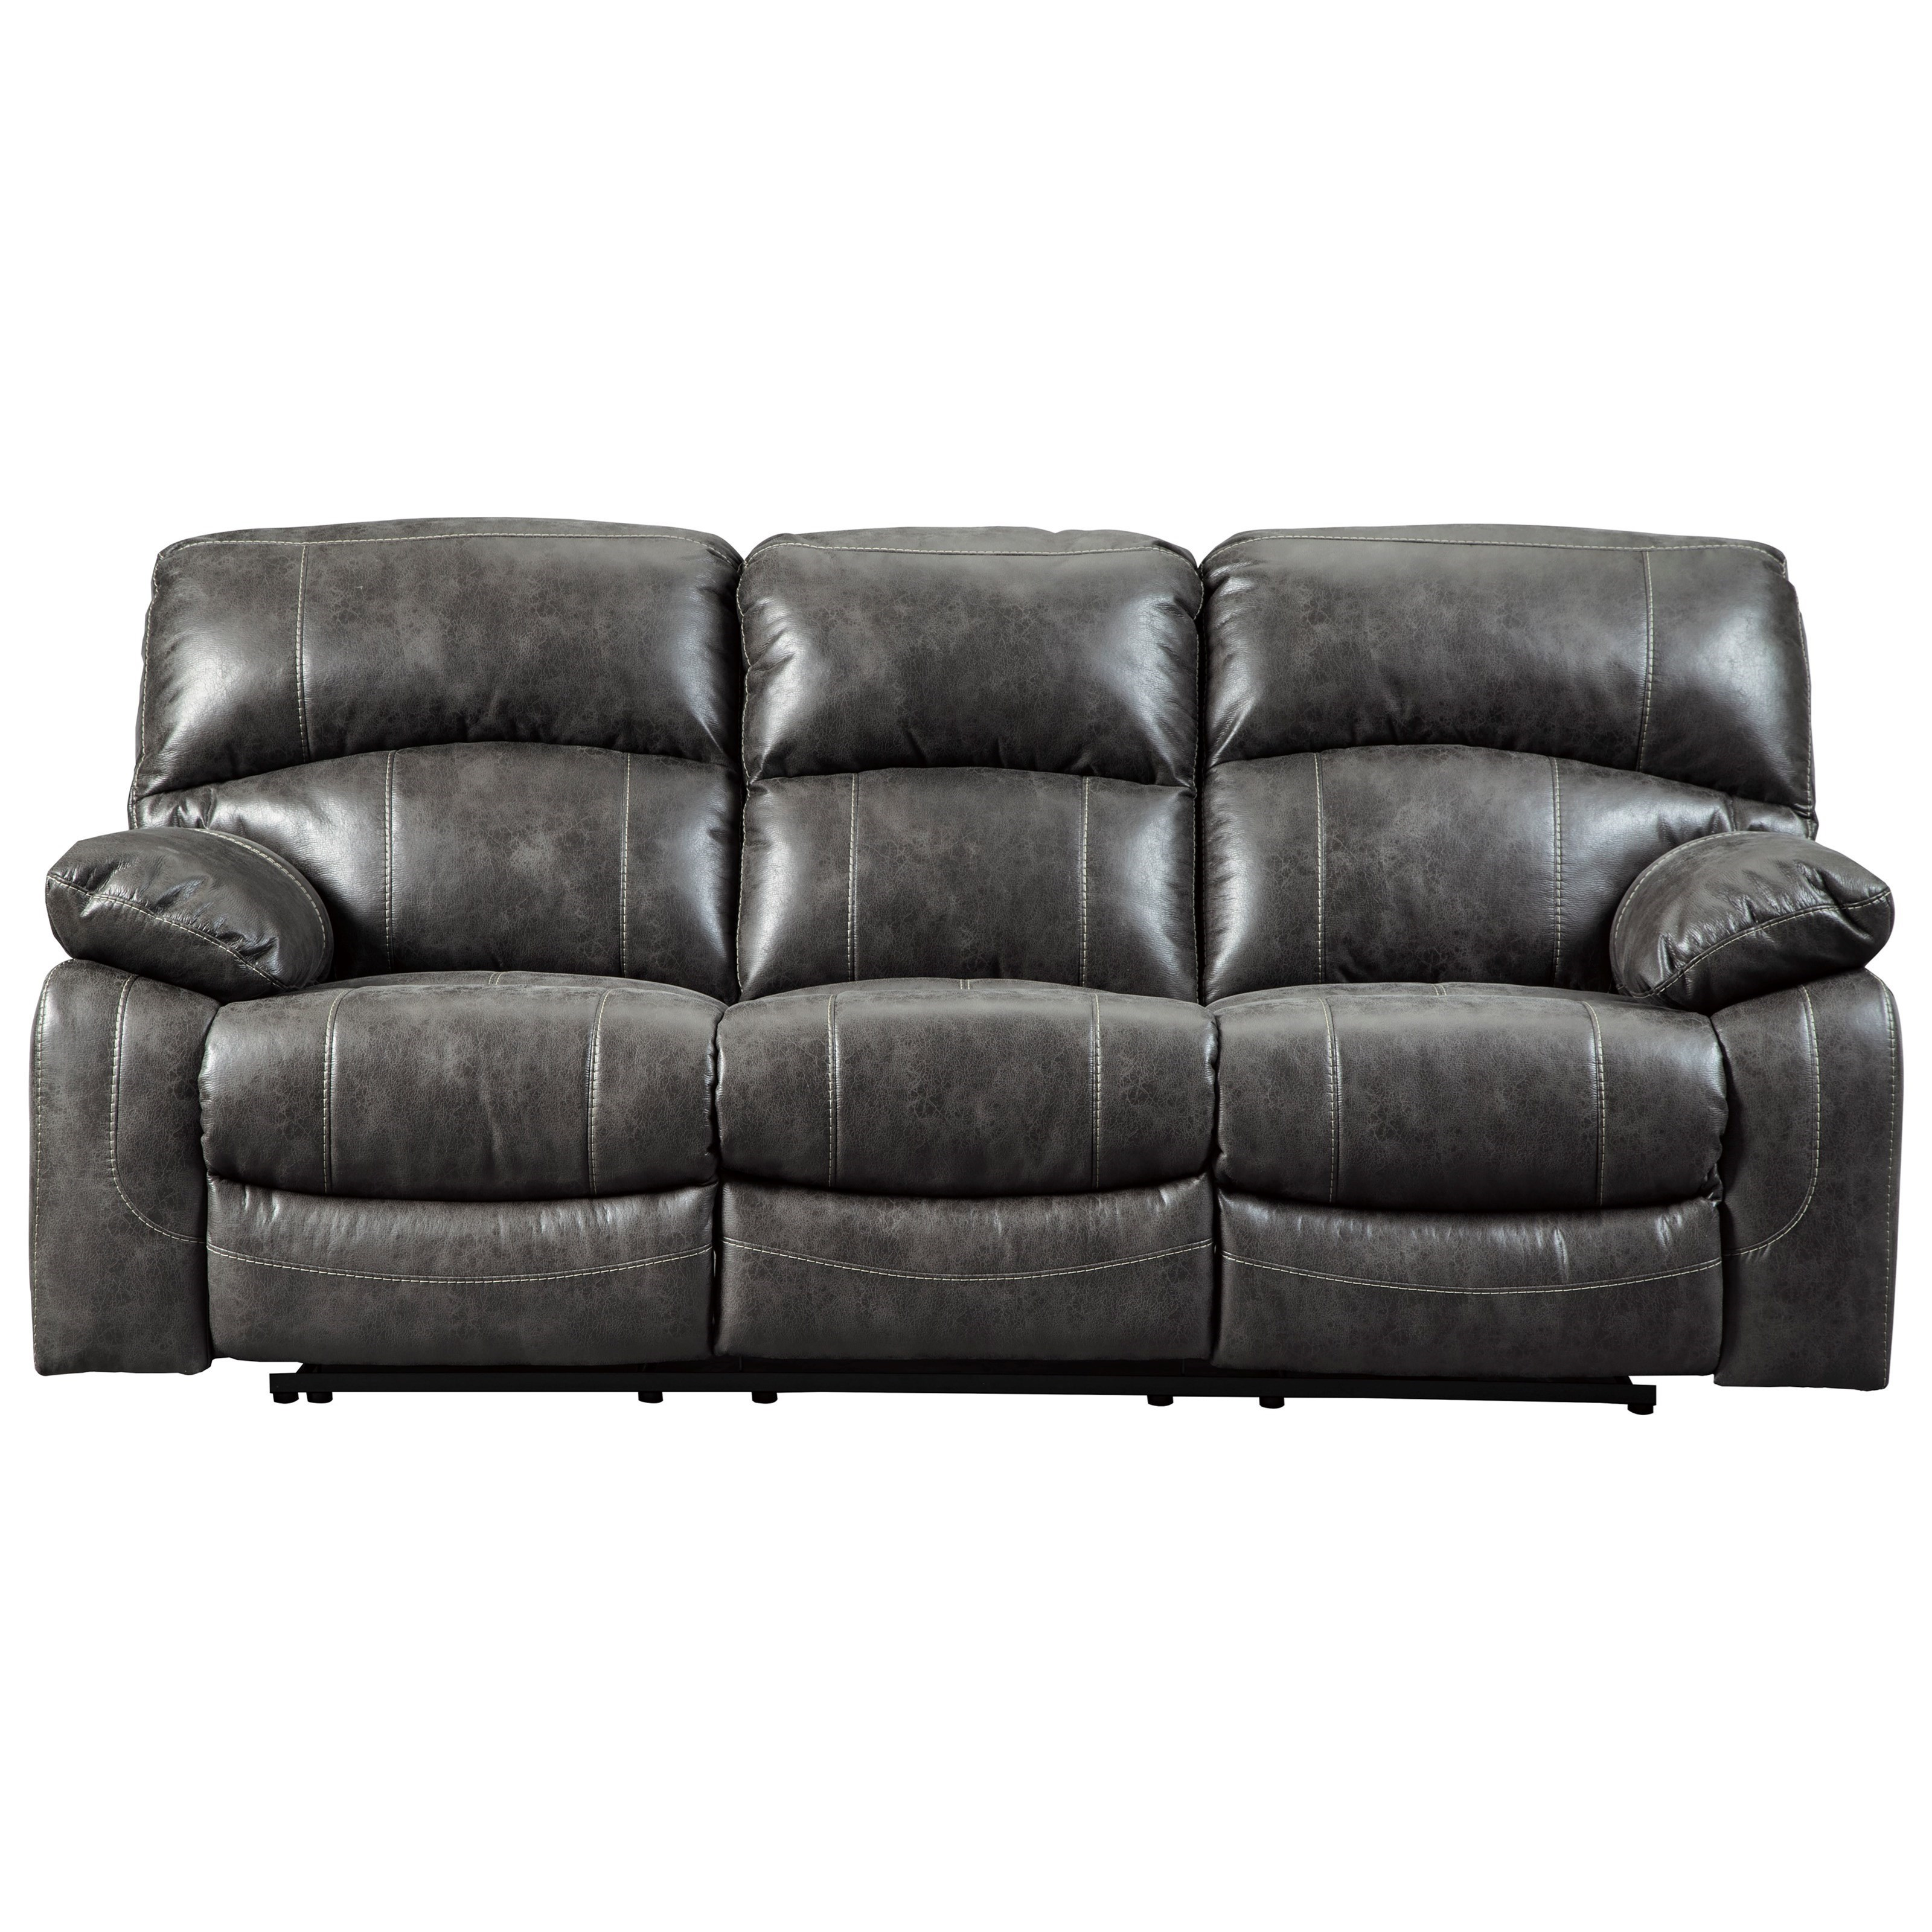 Signature Design By Ashley Dunwell 5160115 Faux Leather Power Signature Design By Ashley Dunwellpower Reclining Sofa Adjustable Headrests